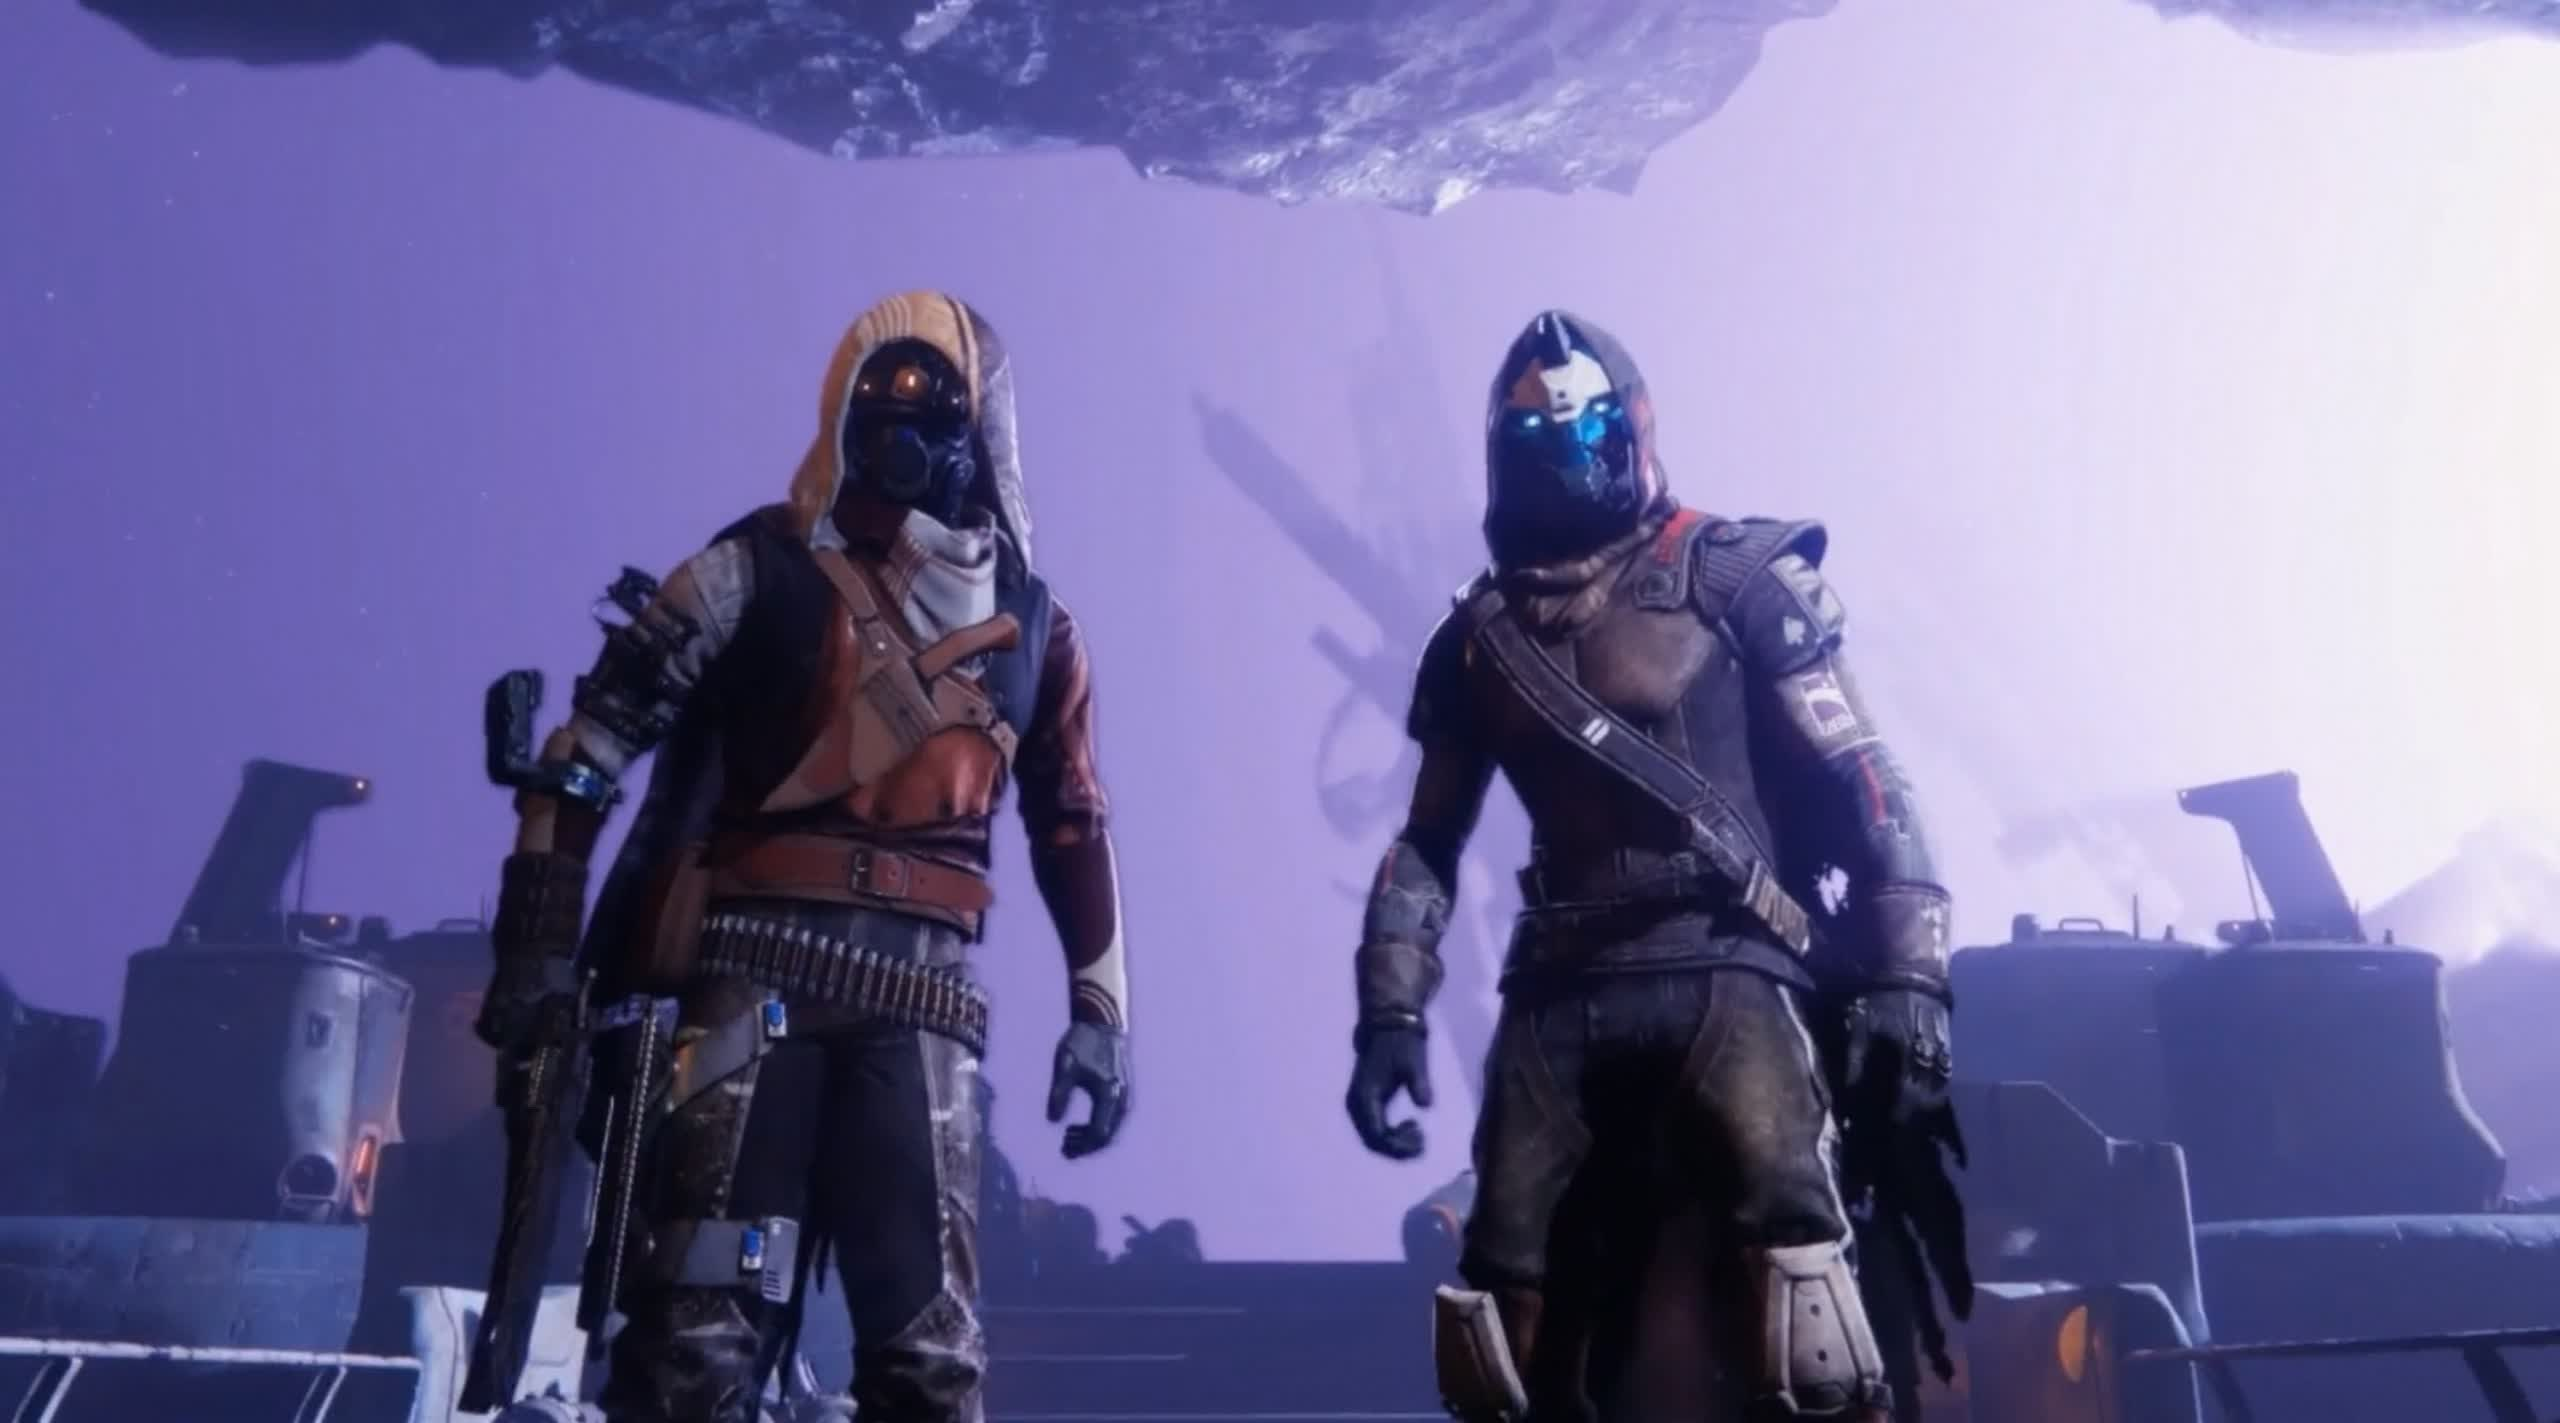 Court holds Halo's composer in contempt, ordered to pay Bungie almost $100,000